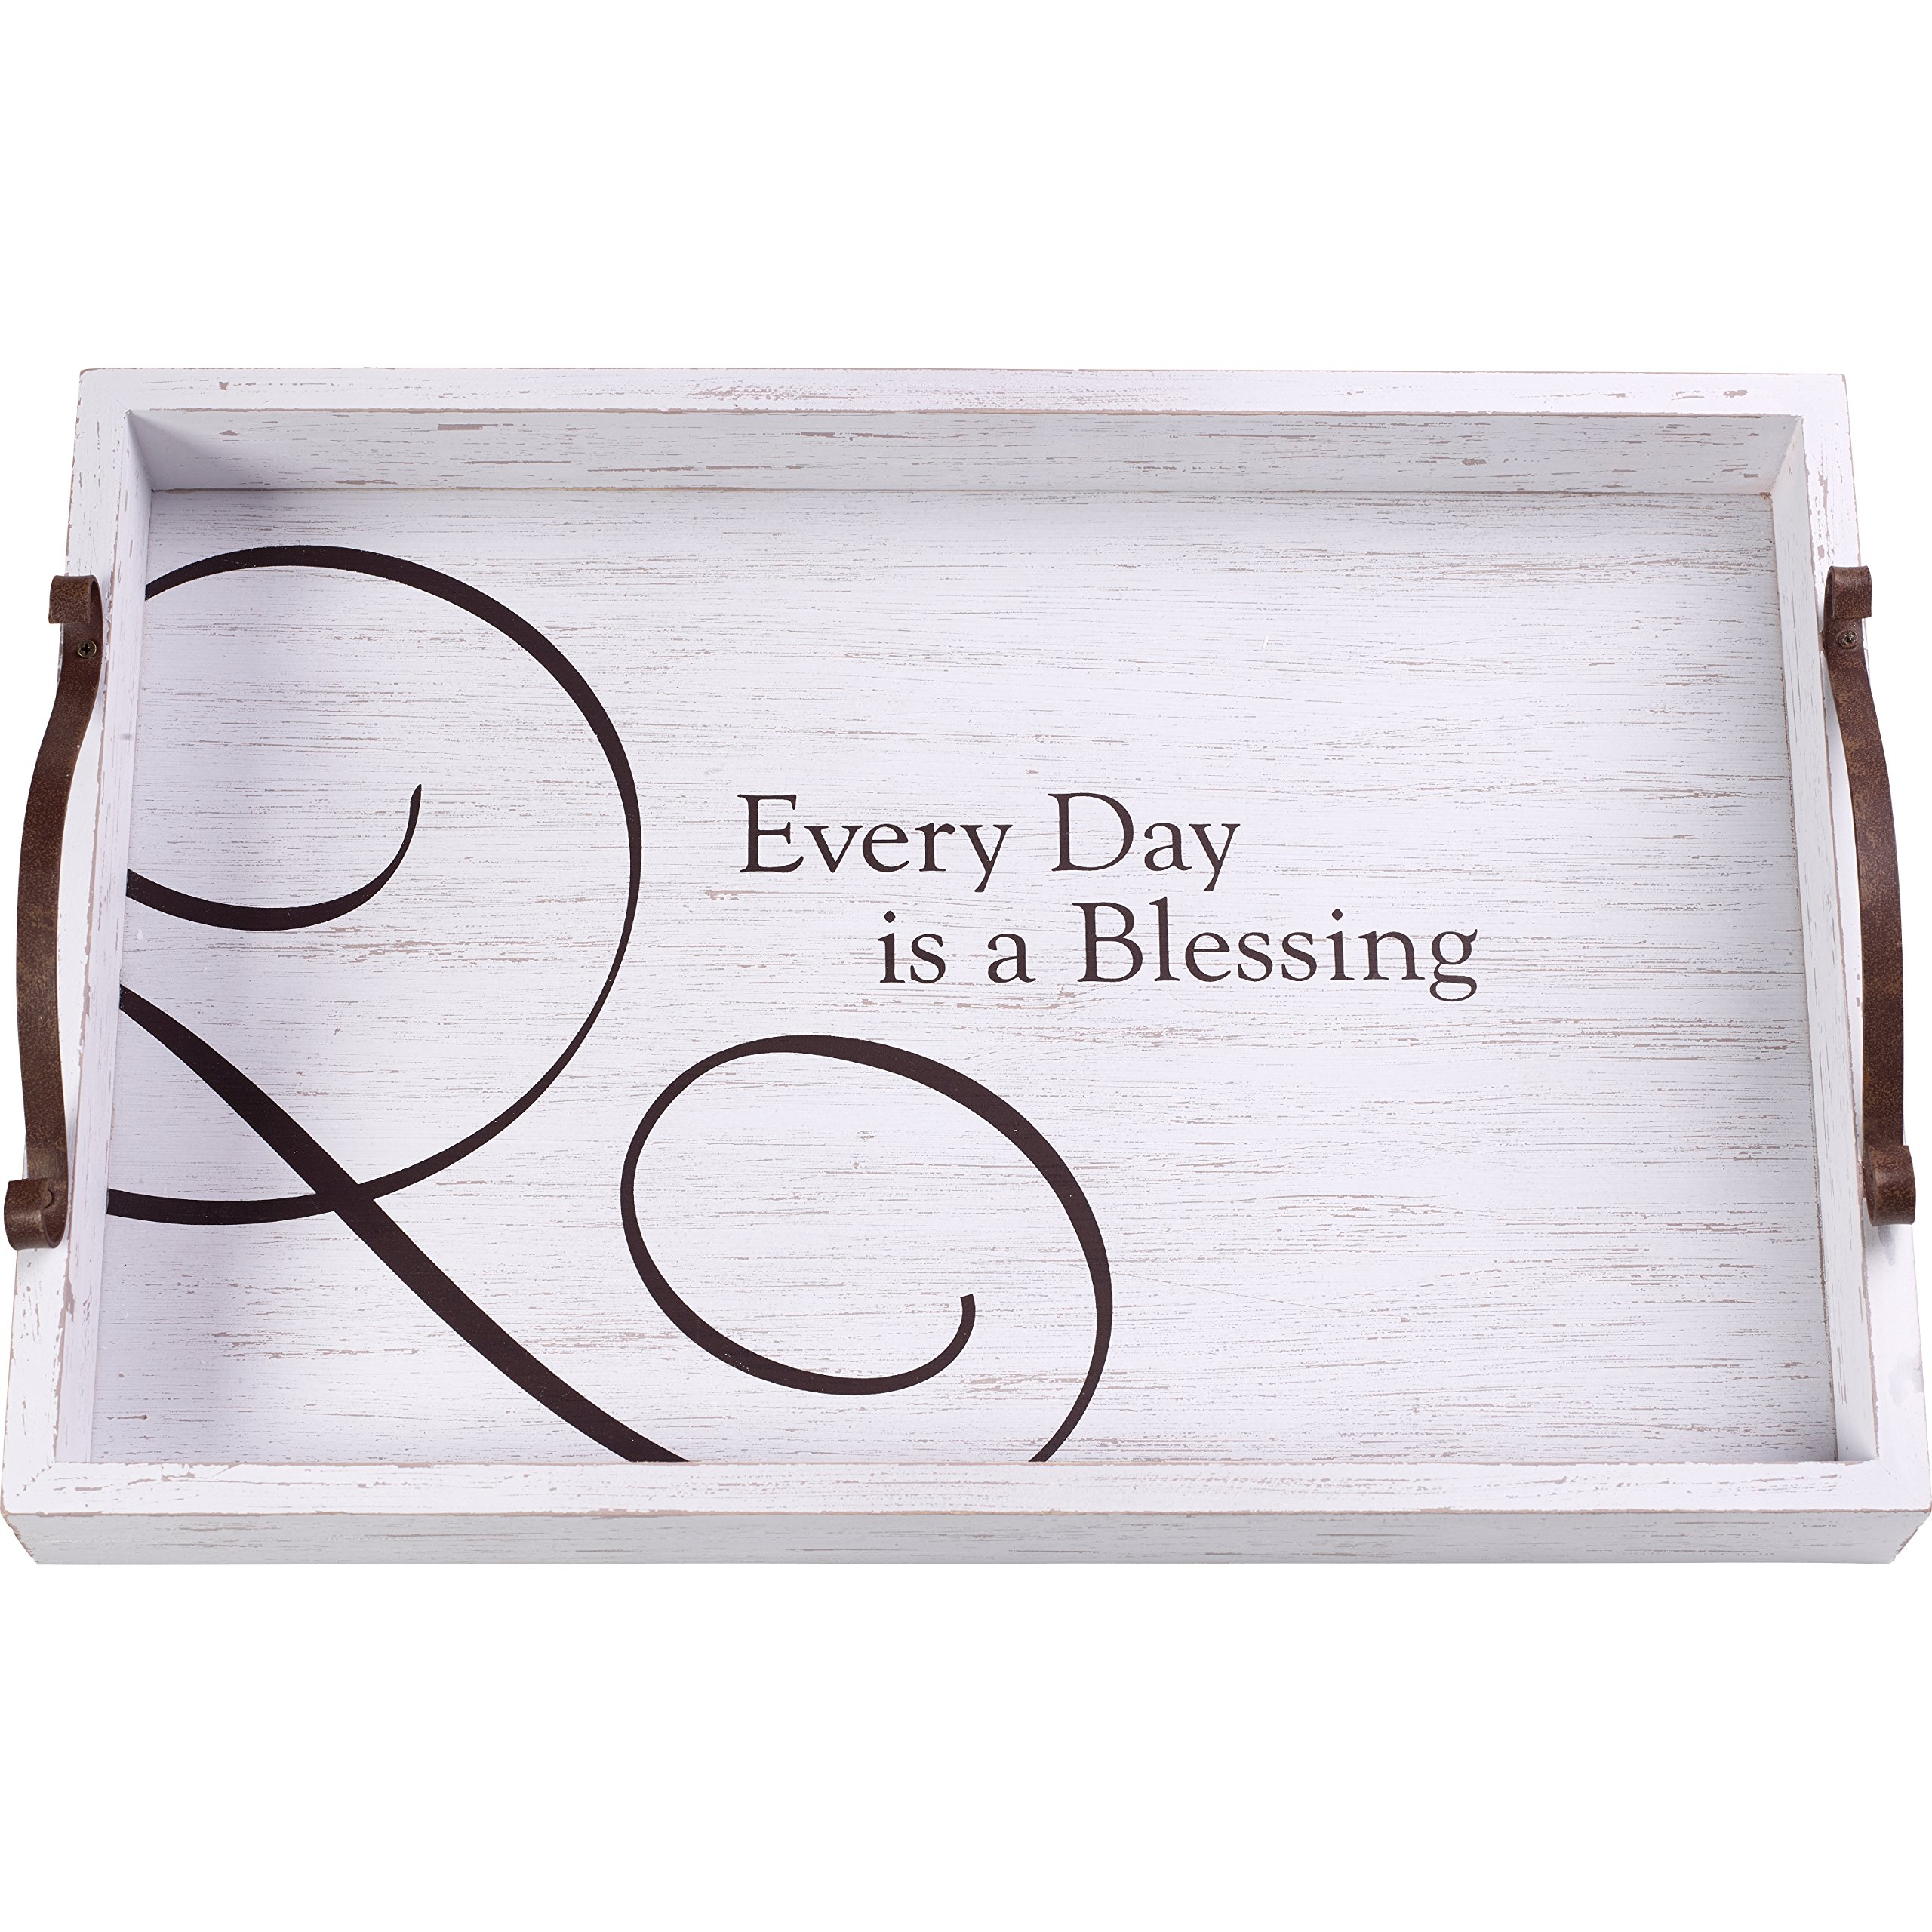 Precious Moments Every Day is A Blessing Rustic Farmhouse Distressed 12 X 8 Wood & Metal Decorative Home Decor Serving Tray 173436 by Precious Moments